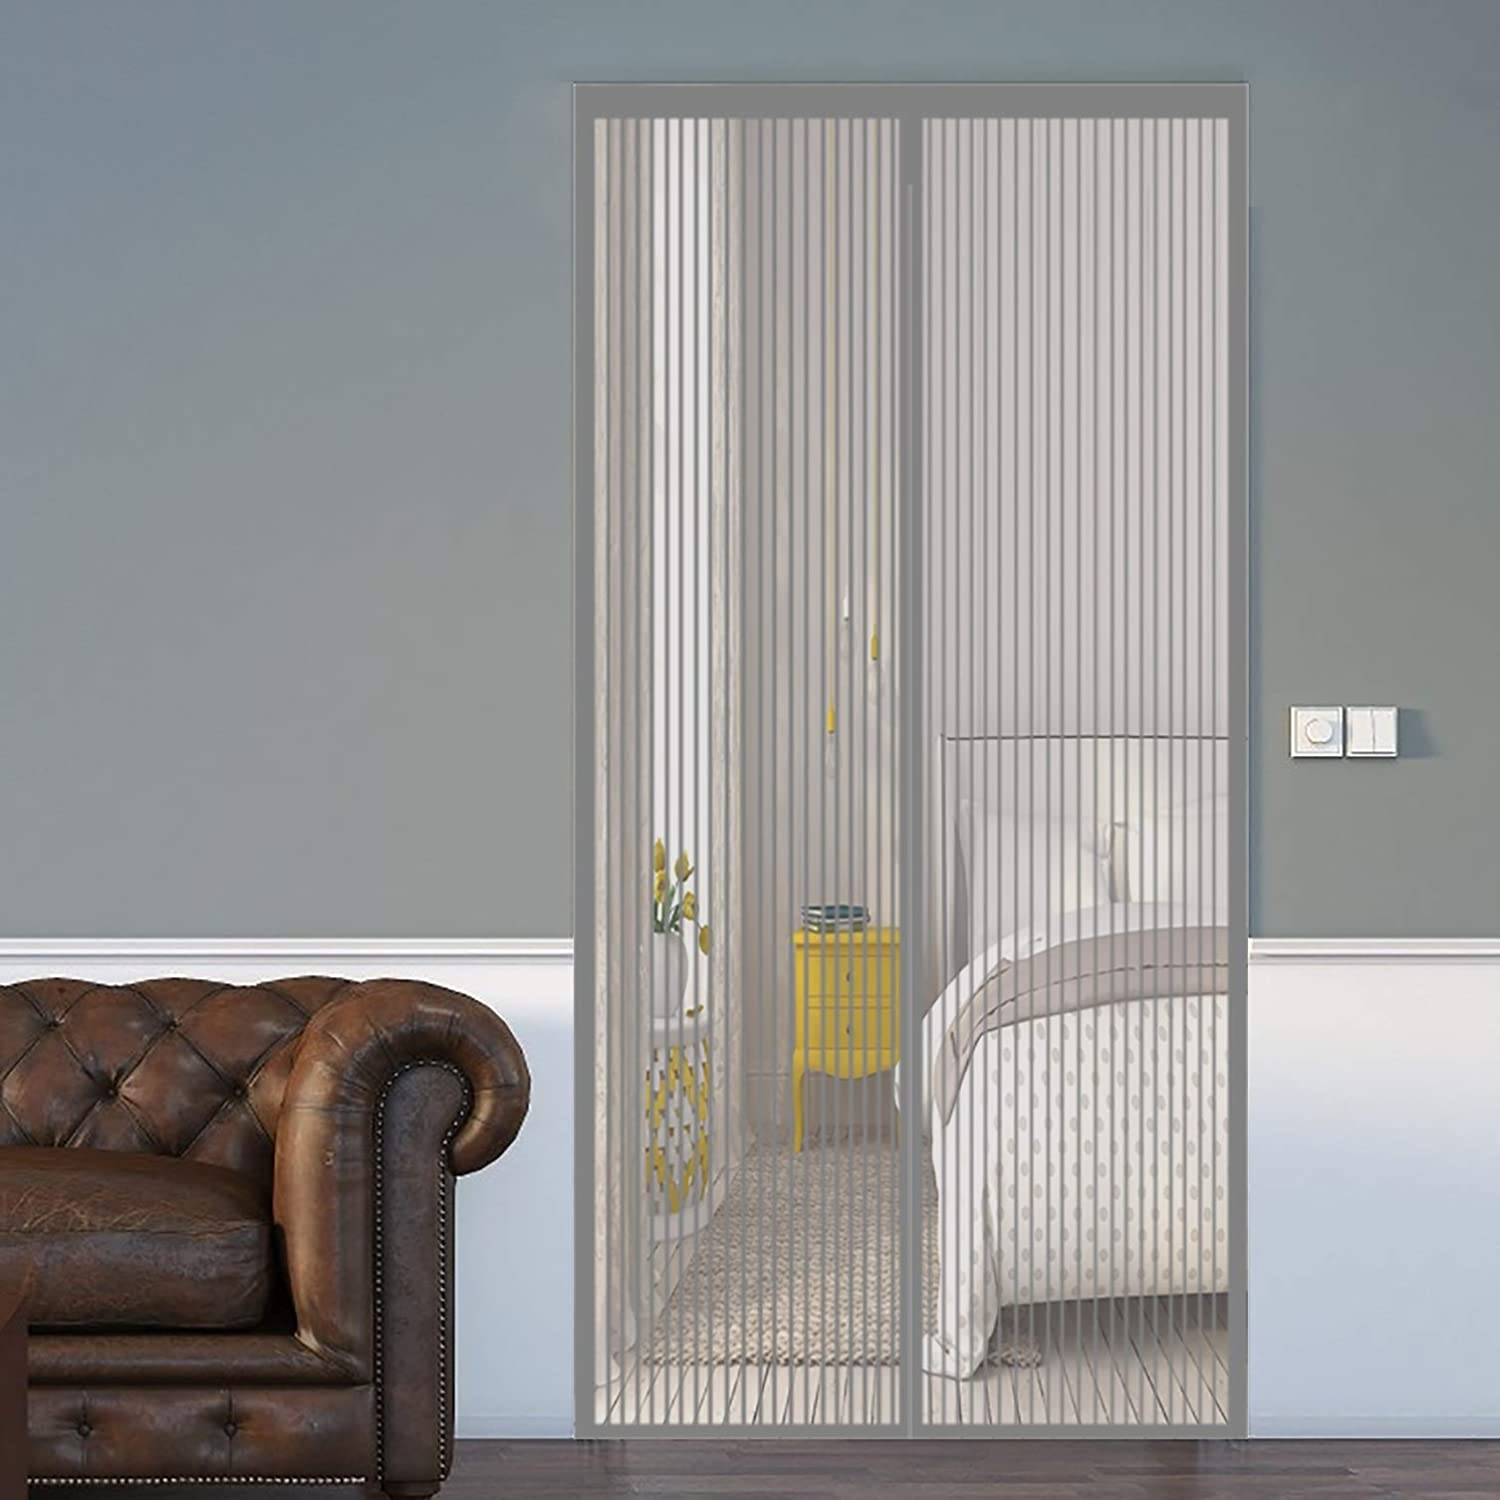 Limited Special Price COUEO Magnetic Fly Cheap super special price Insect Screen 170x260cm Mesh Duty Door Heavy